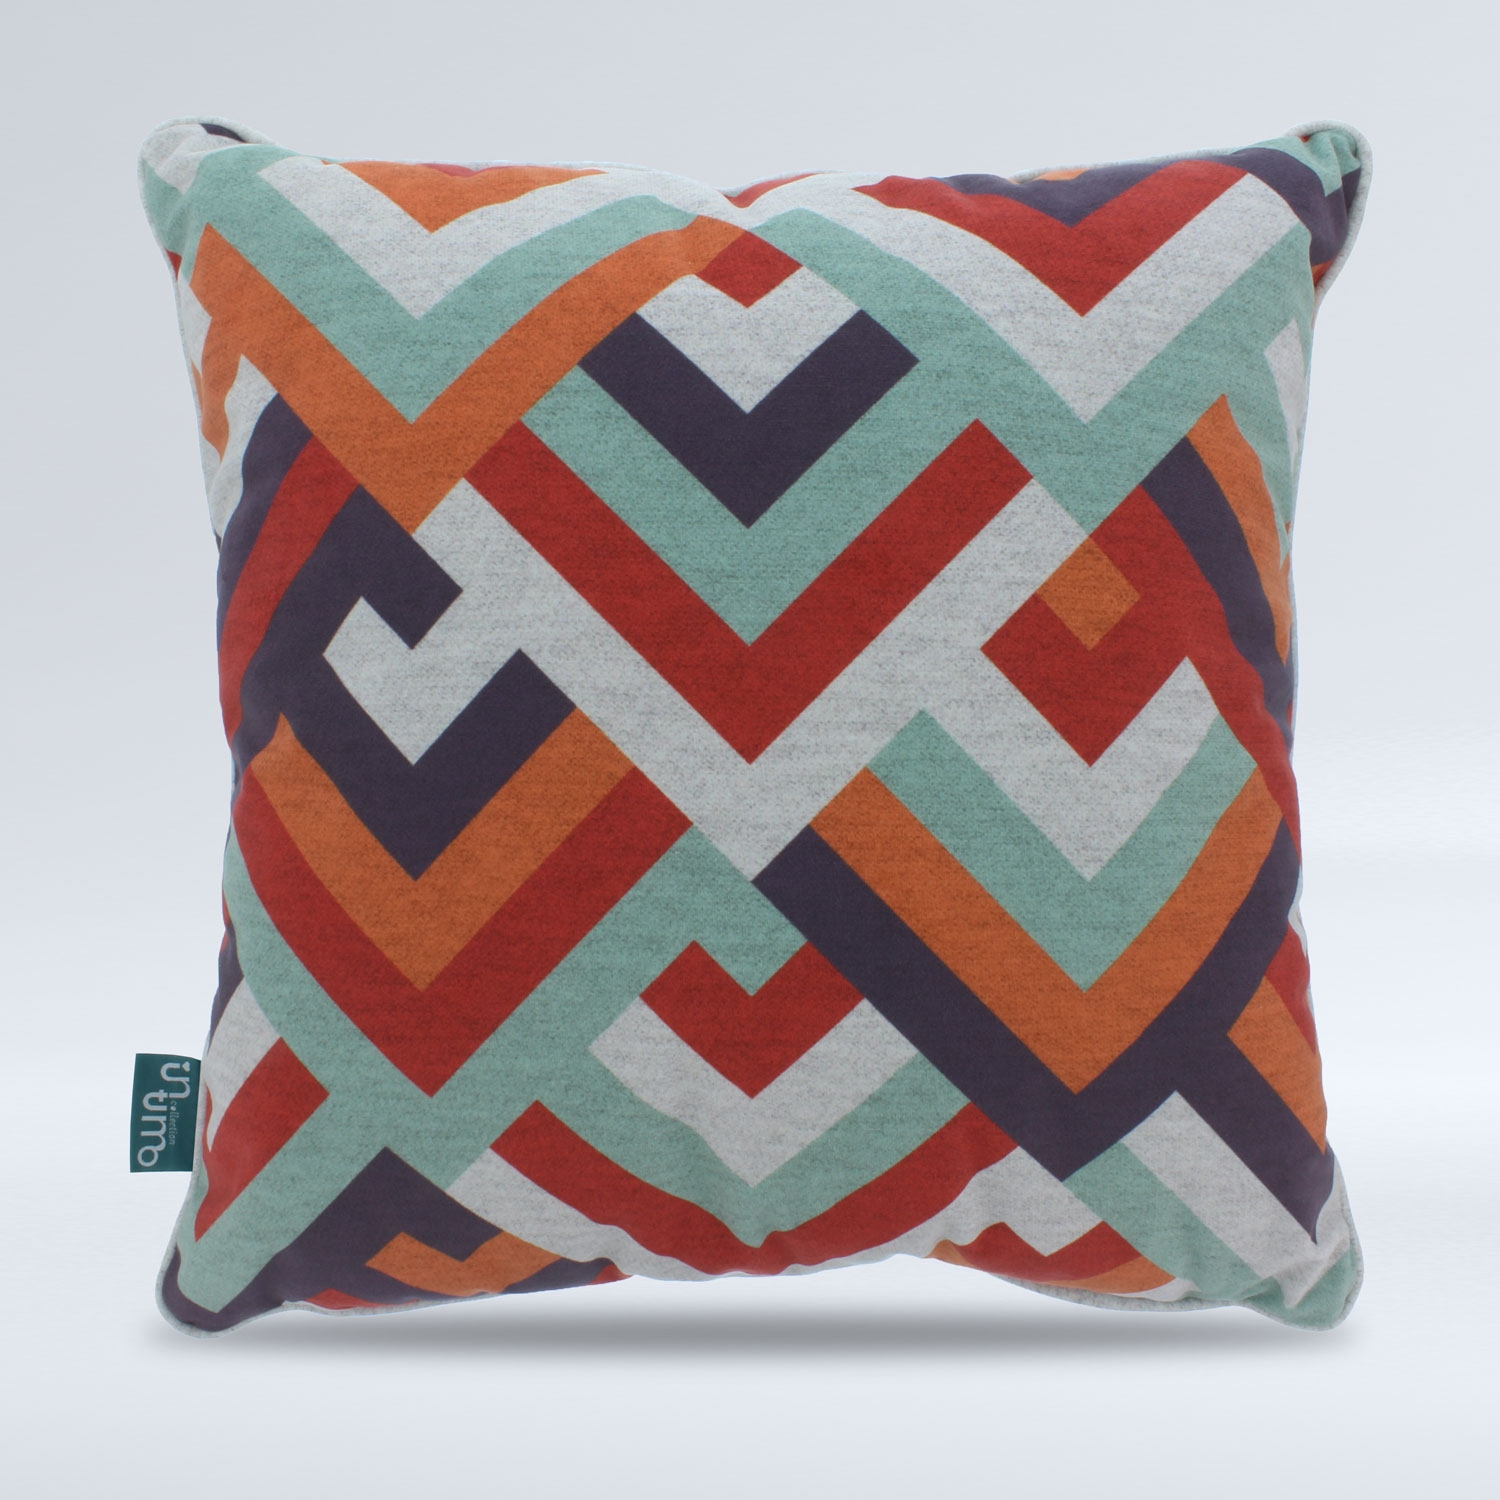 Xl Decorative Pillows : Retro peaks XL (45P203) - Intimo Collection